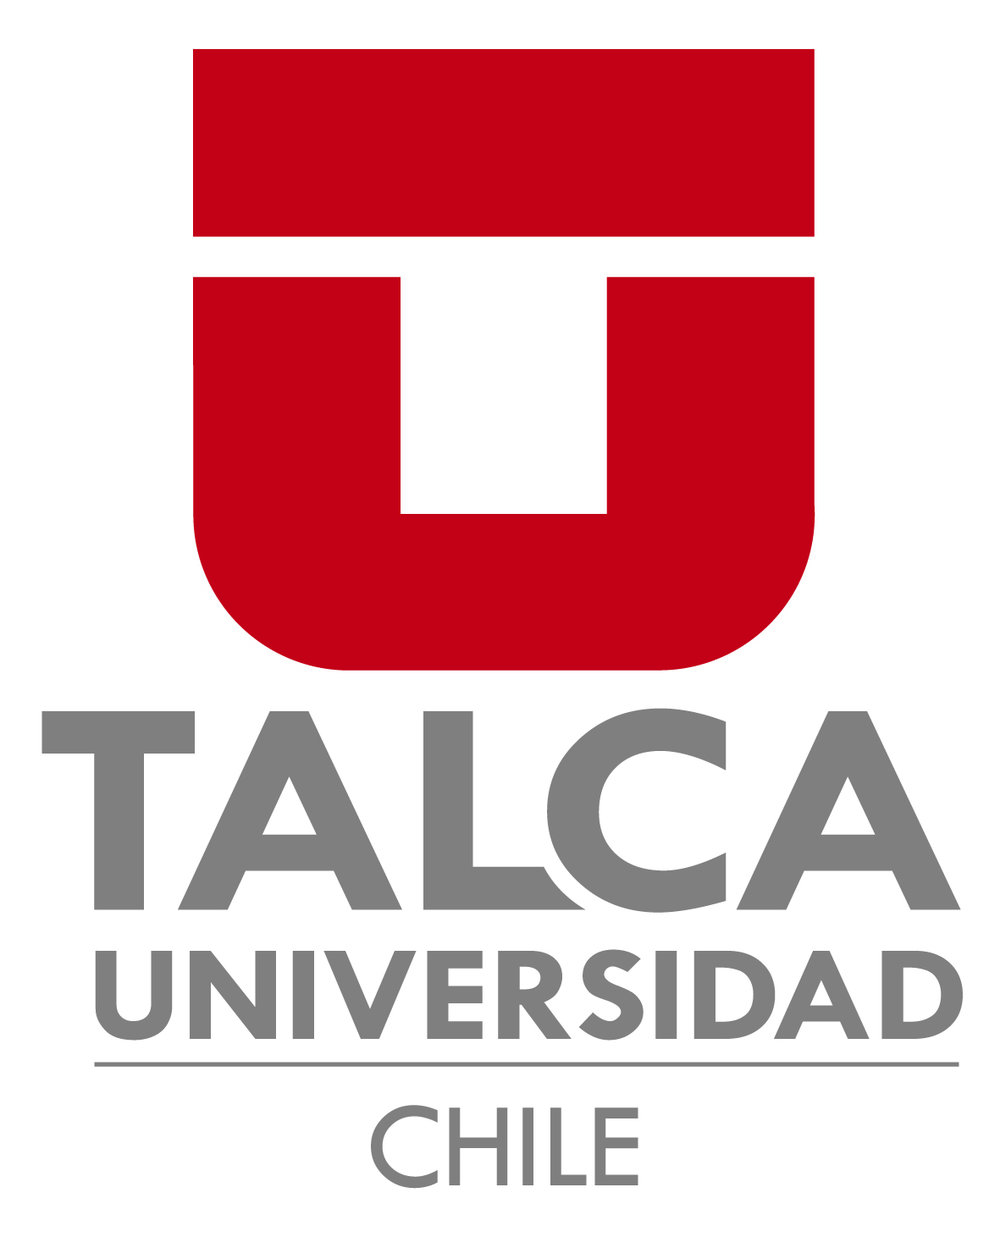 28192_Universidad_de_Talca_alta_resol.jpg